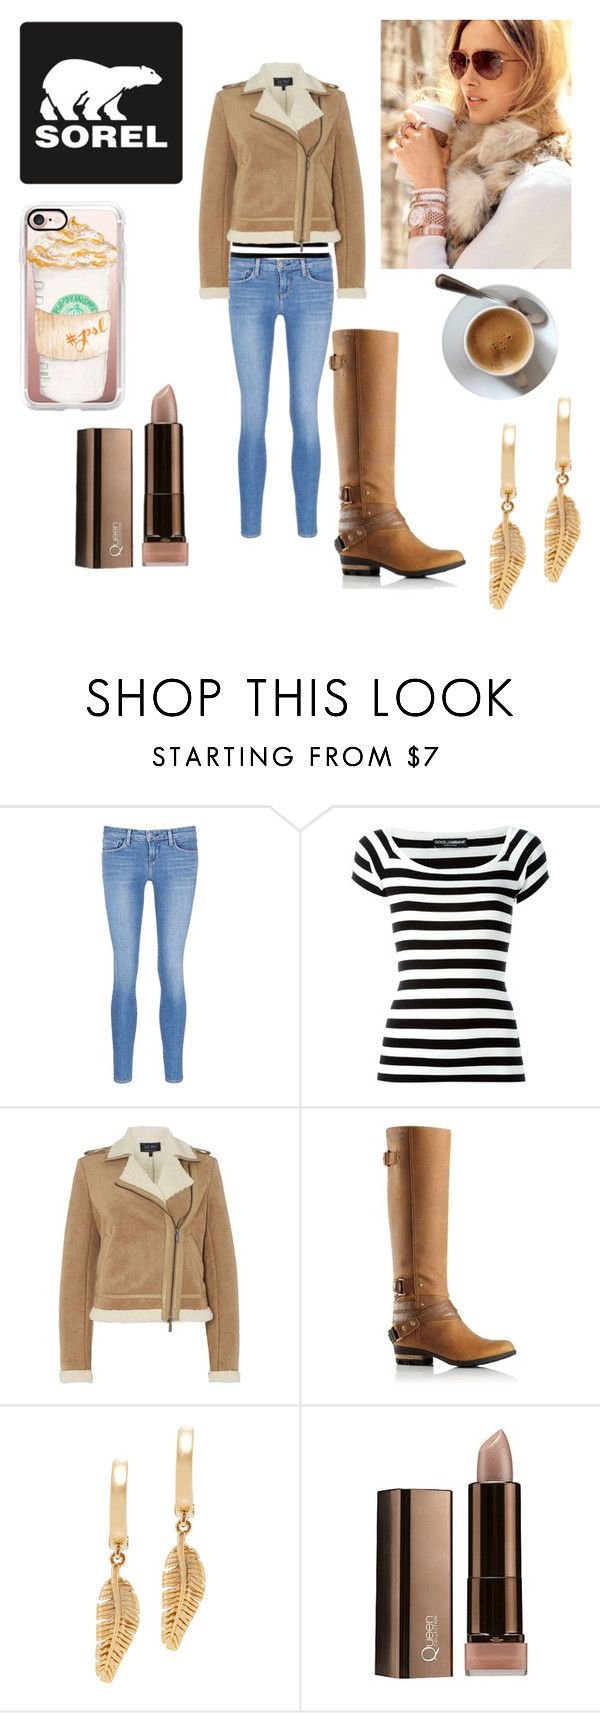 """""""Kick Up the Leaves (Stylishly) With SOREL: CONTEST ENTRY"""" by badwolfbay6 ❤ liked on Polyvore featuring SOREL, L'Agence, Dolce&Gabbana, Armani Jeans, Michael Kors, Casetify and sorelstyle"""